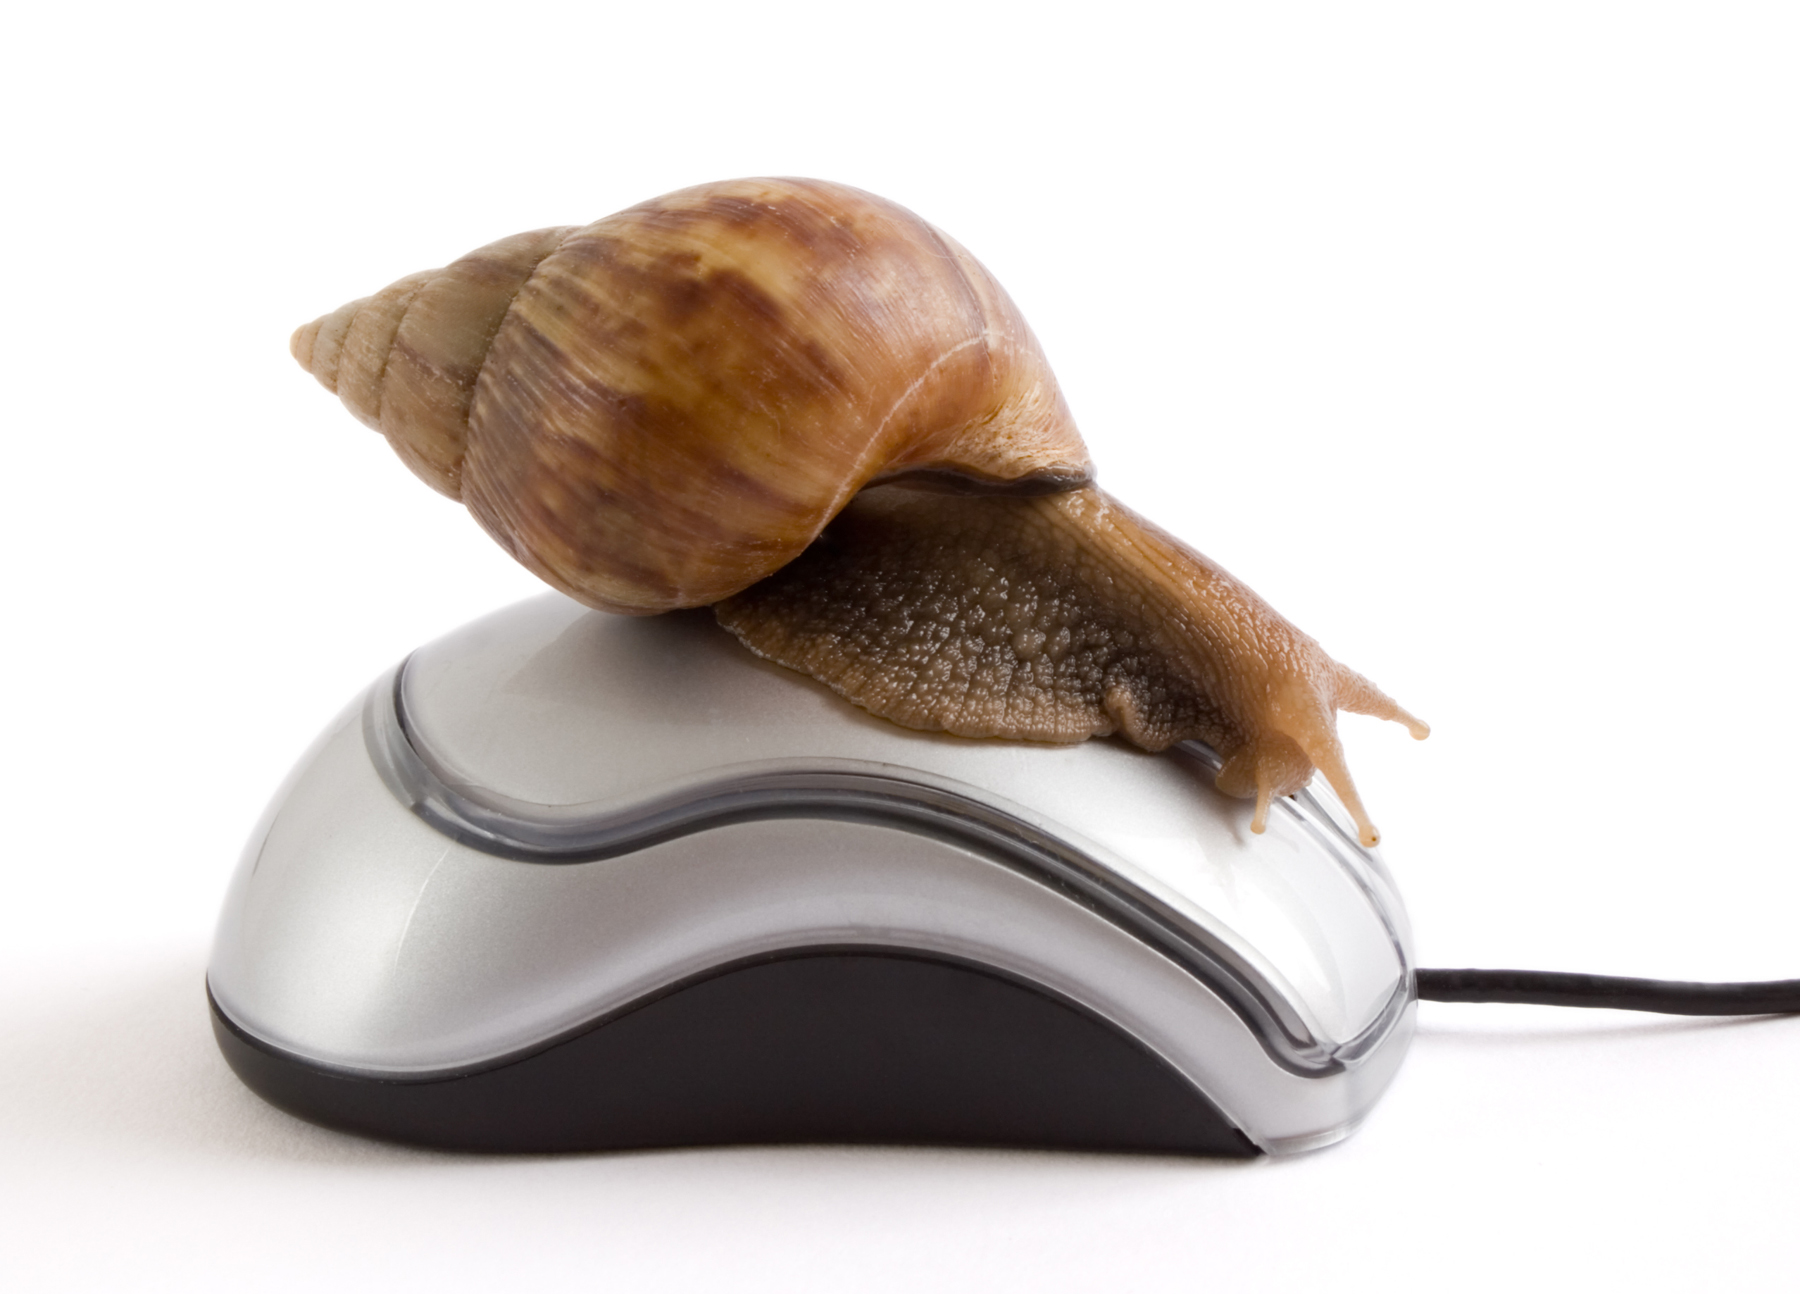 getty-slow-internet-snail.jpg